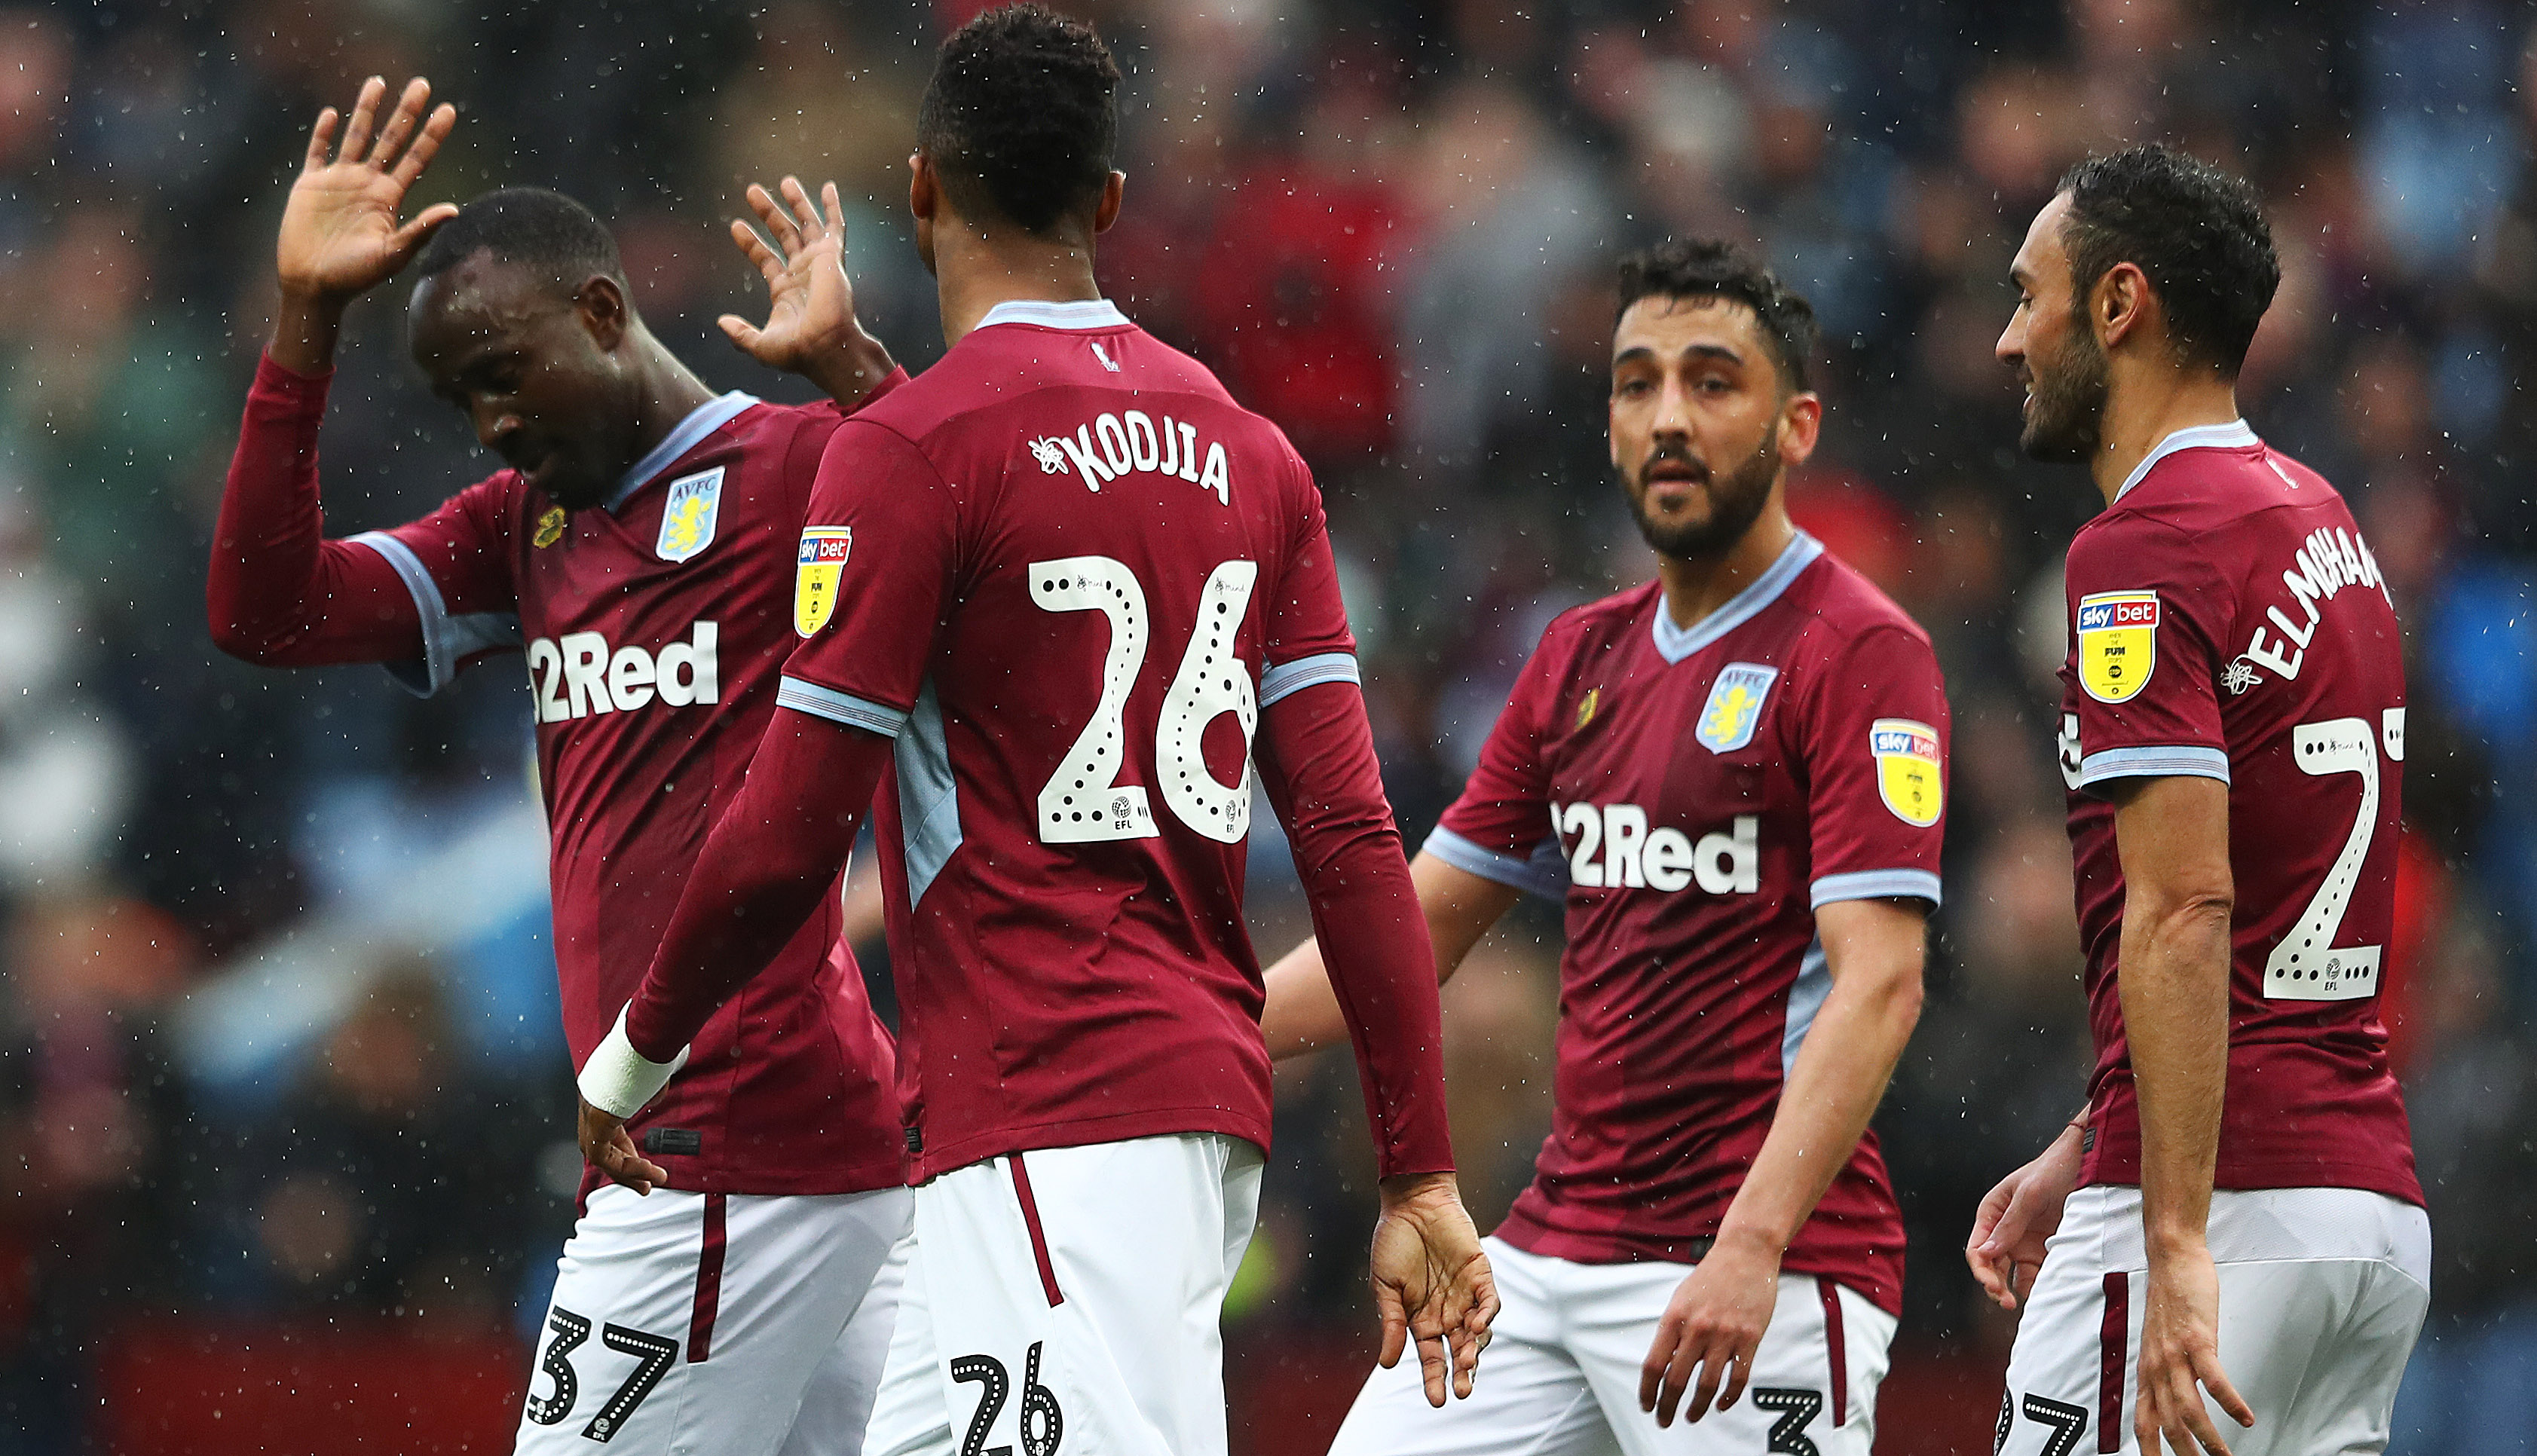 Aston Villa 3-0 Middlesbrough: The playoff push is on